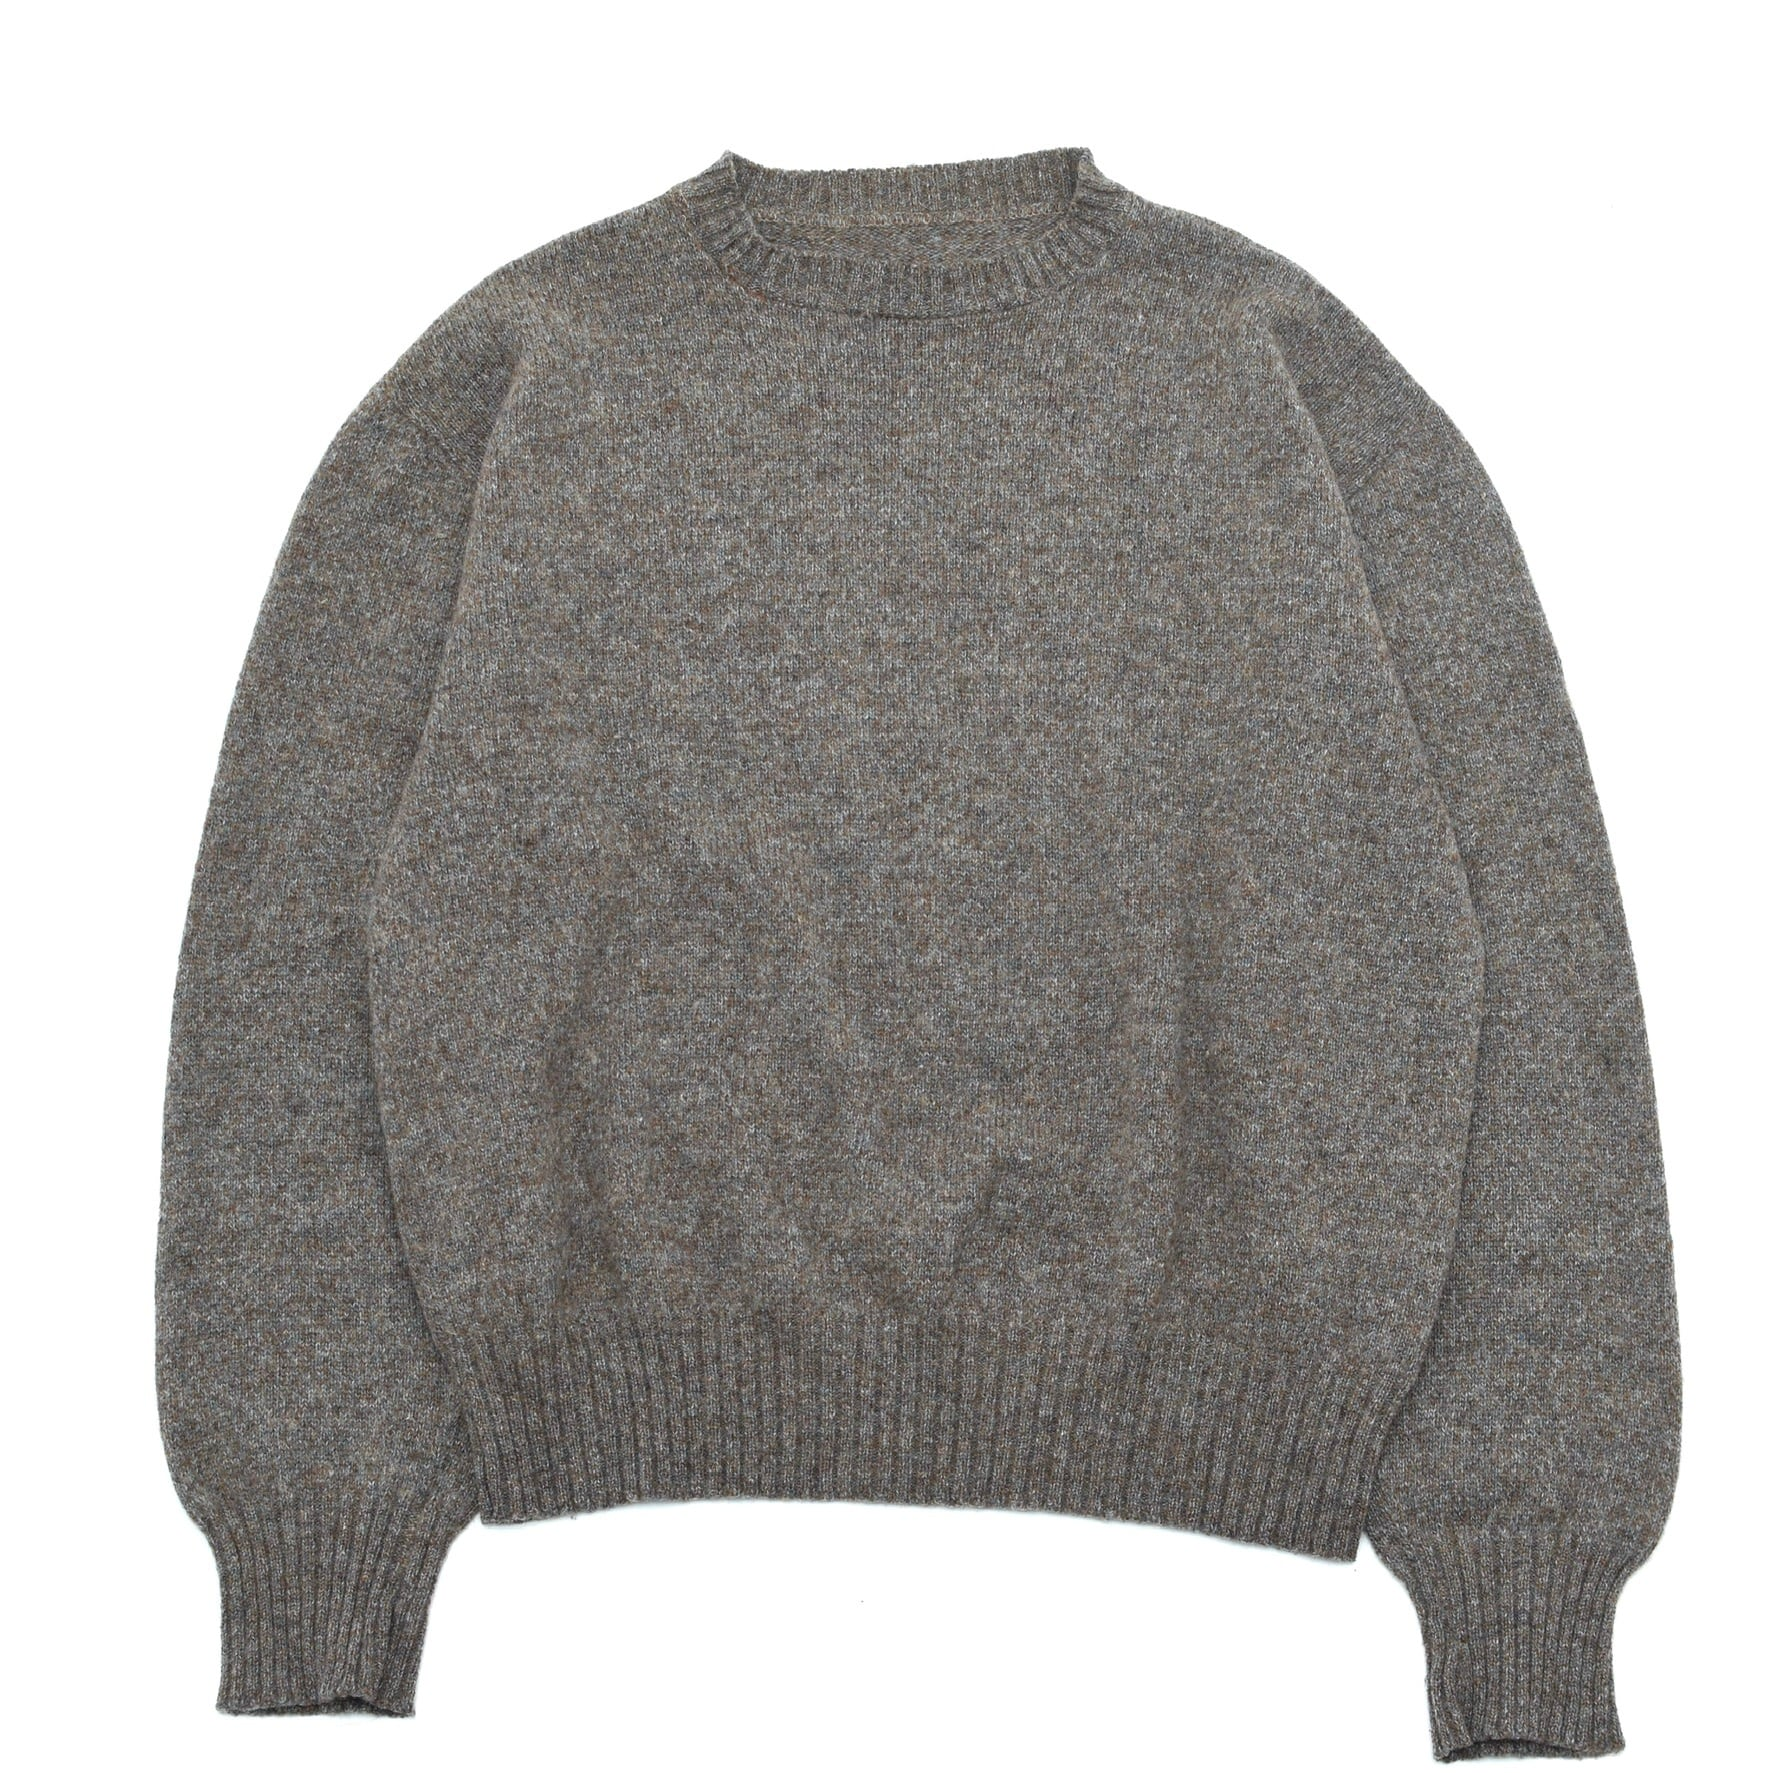 Made in USA RN54023 OLD GAPpullover knit